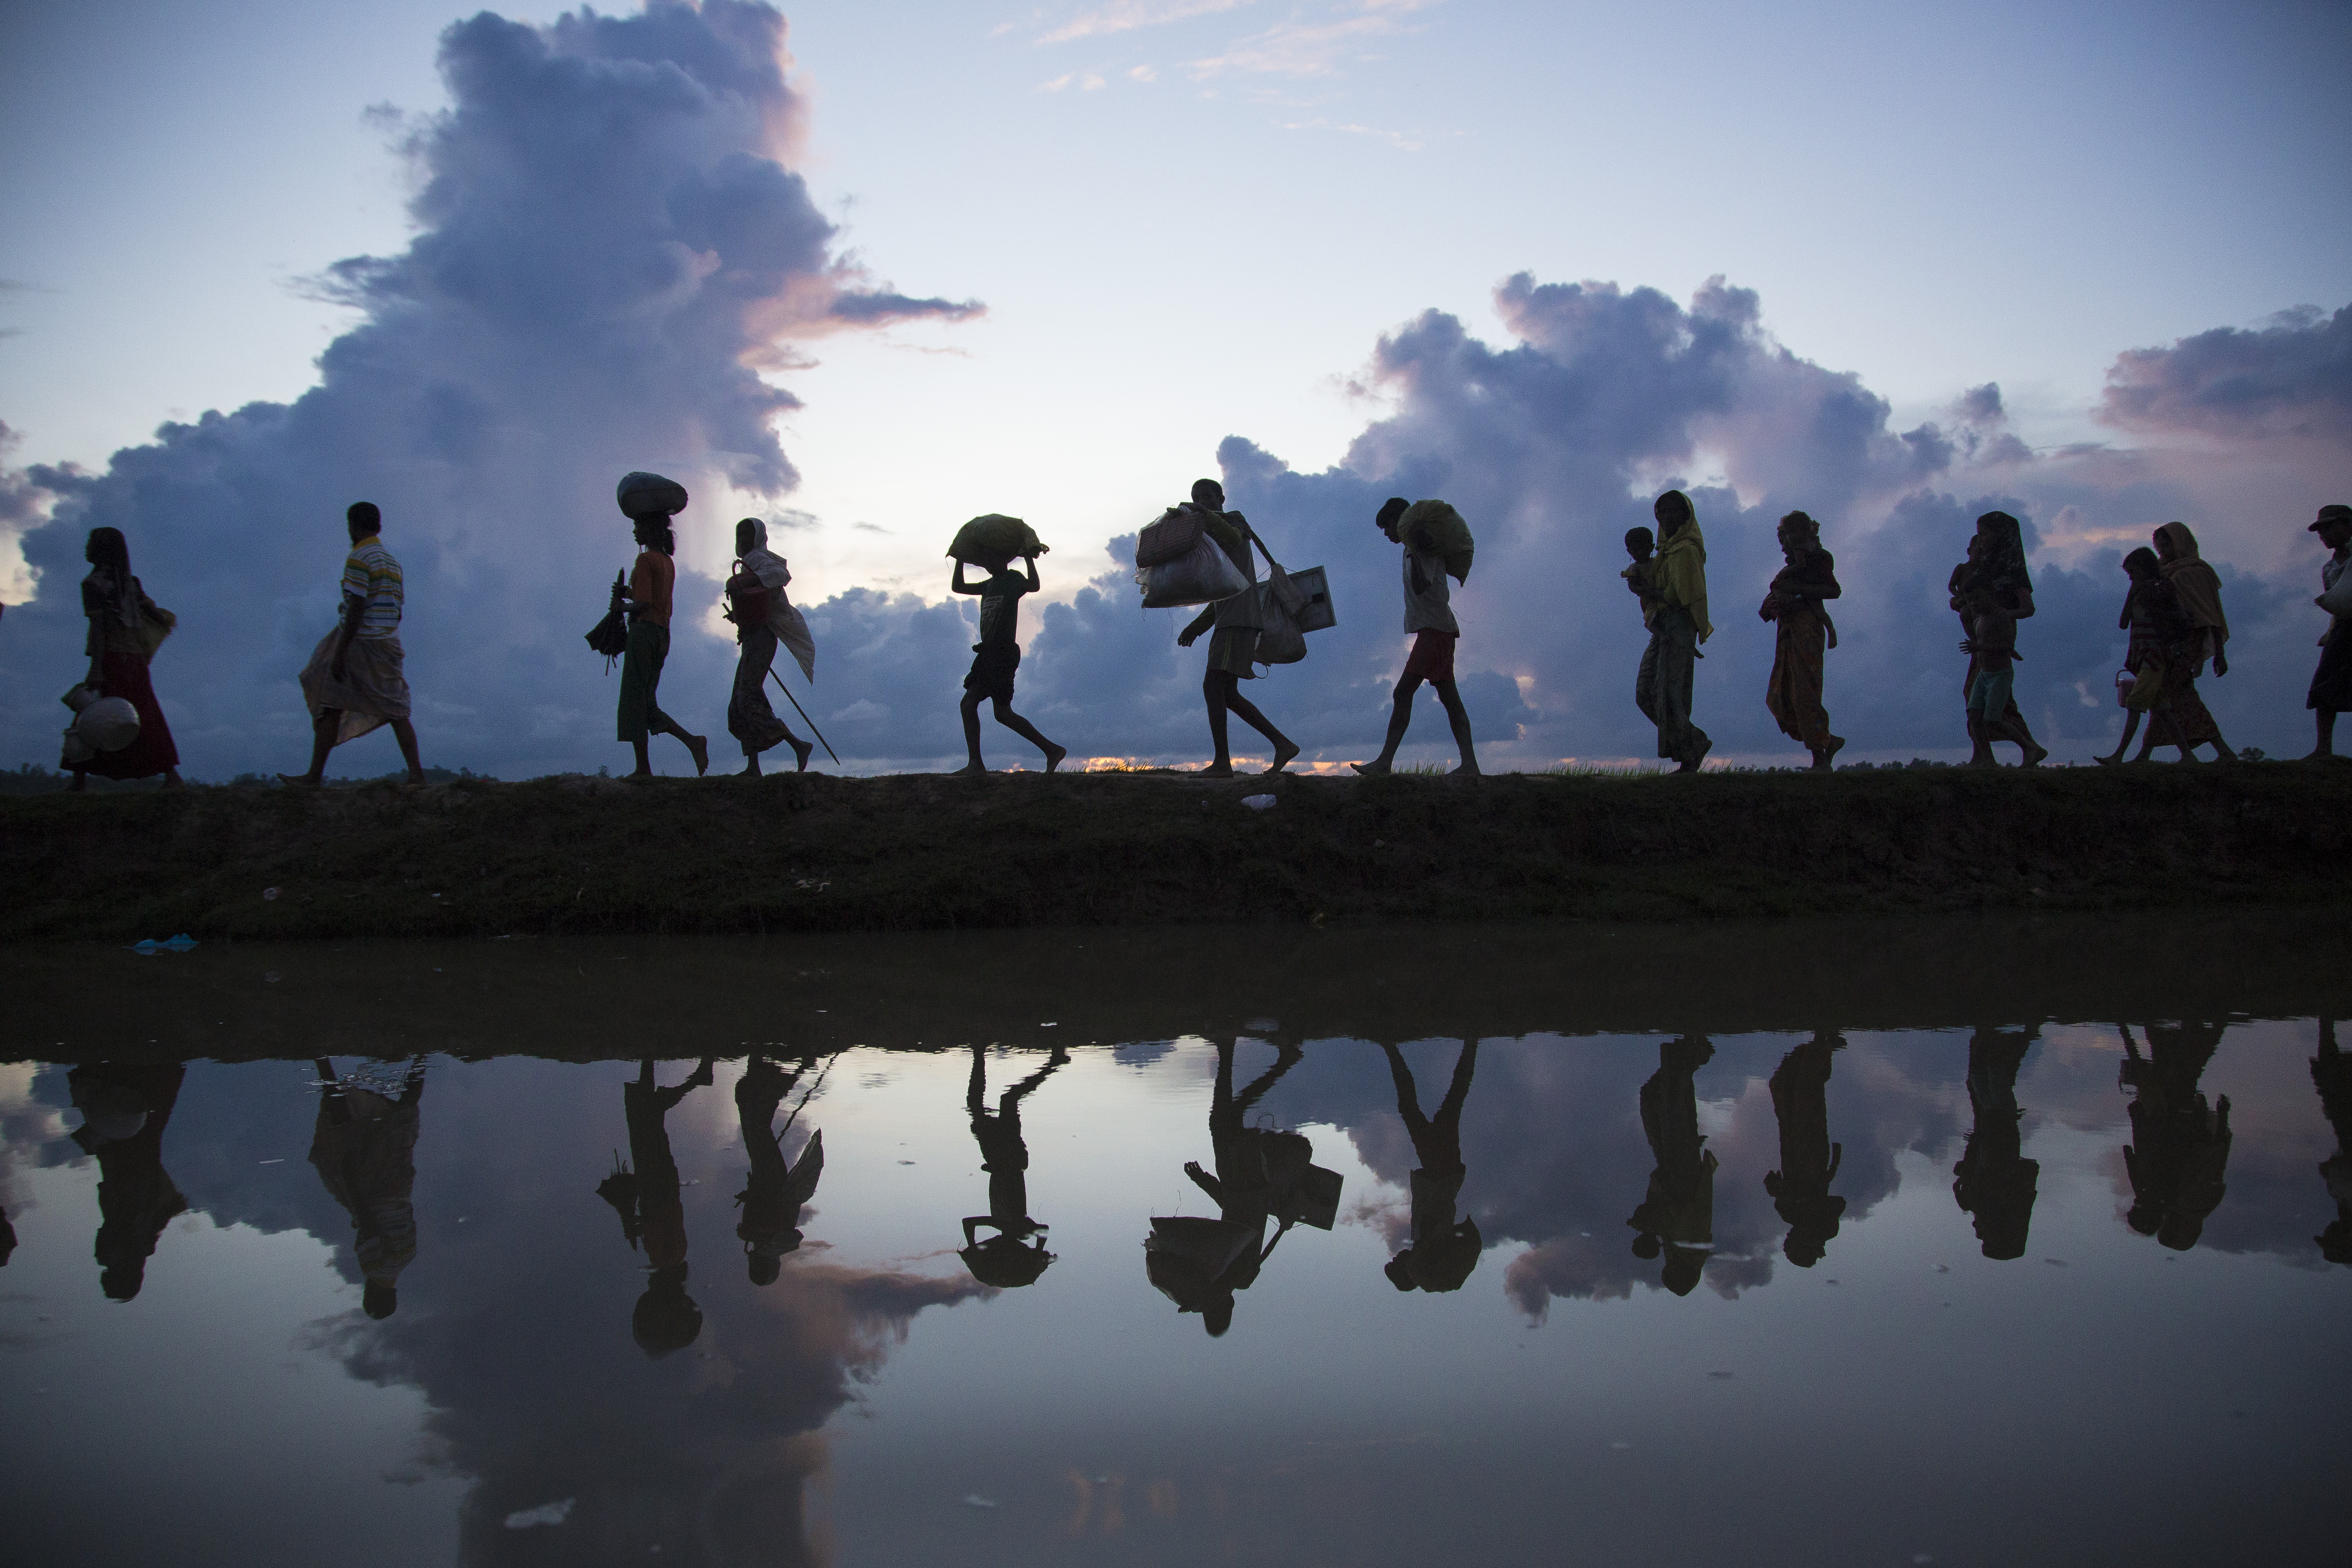 Taking on traffickers at the world's largest refugee site